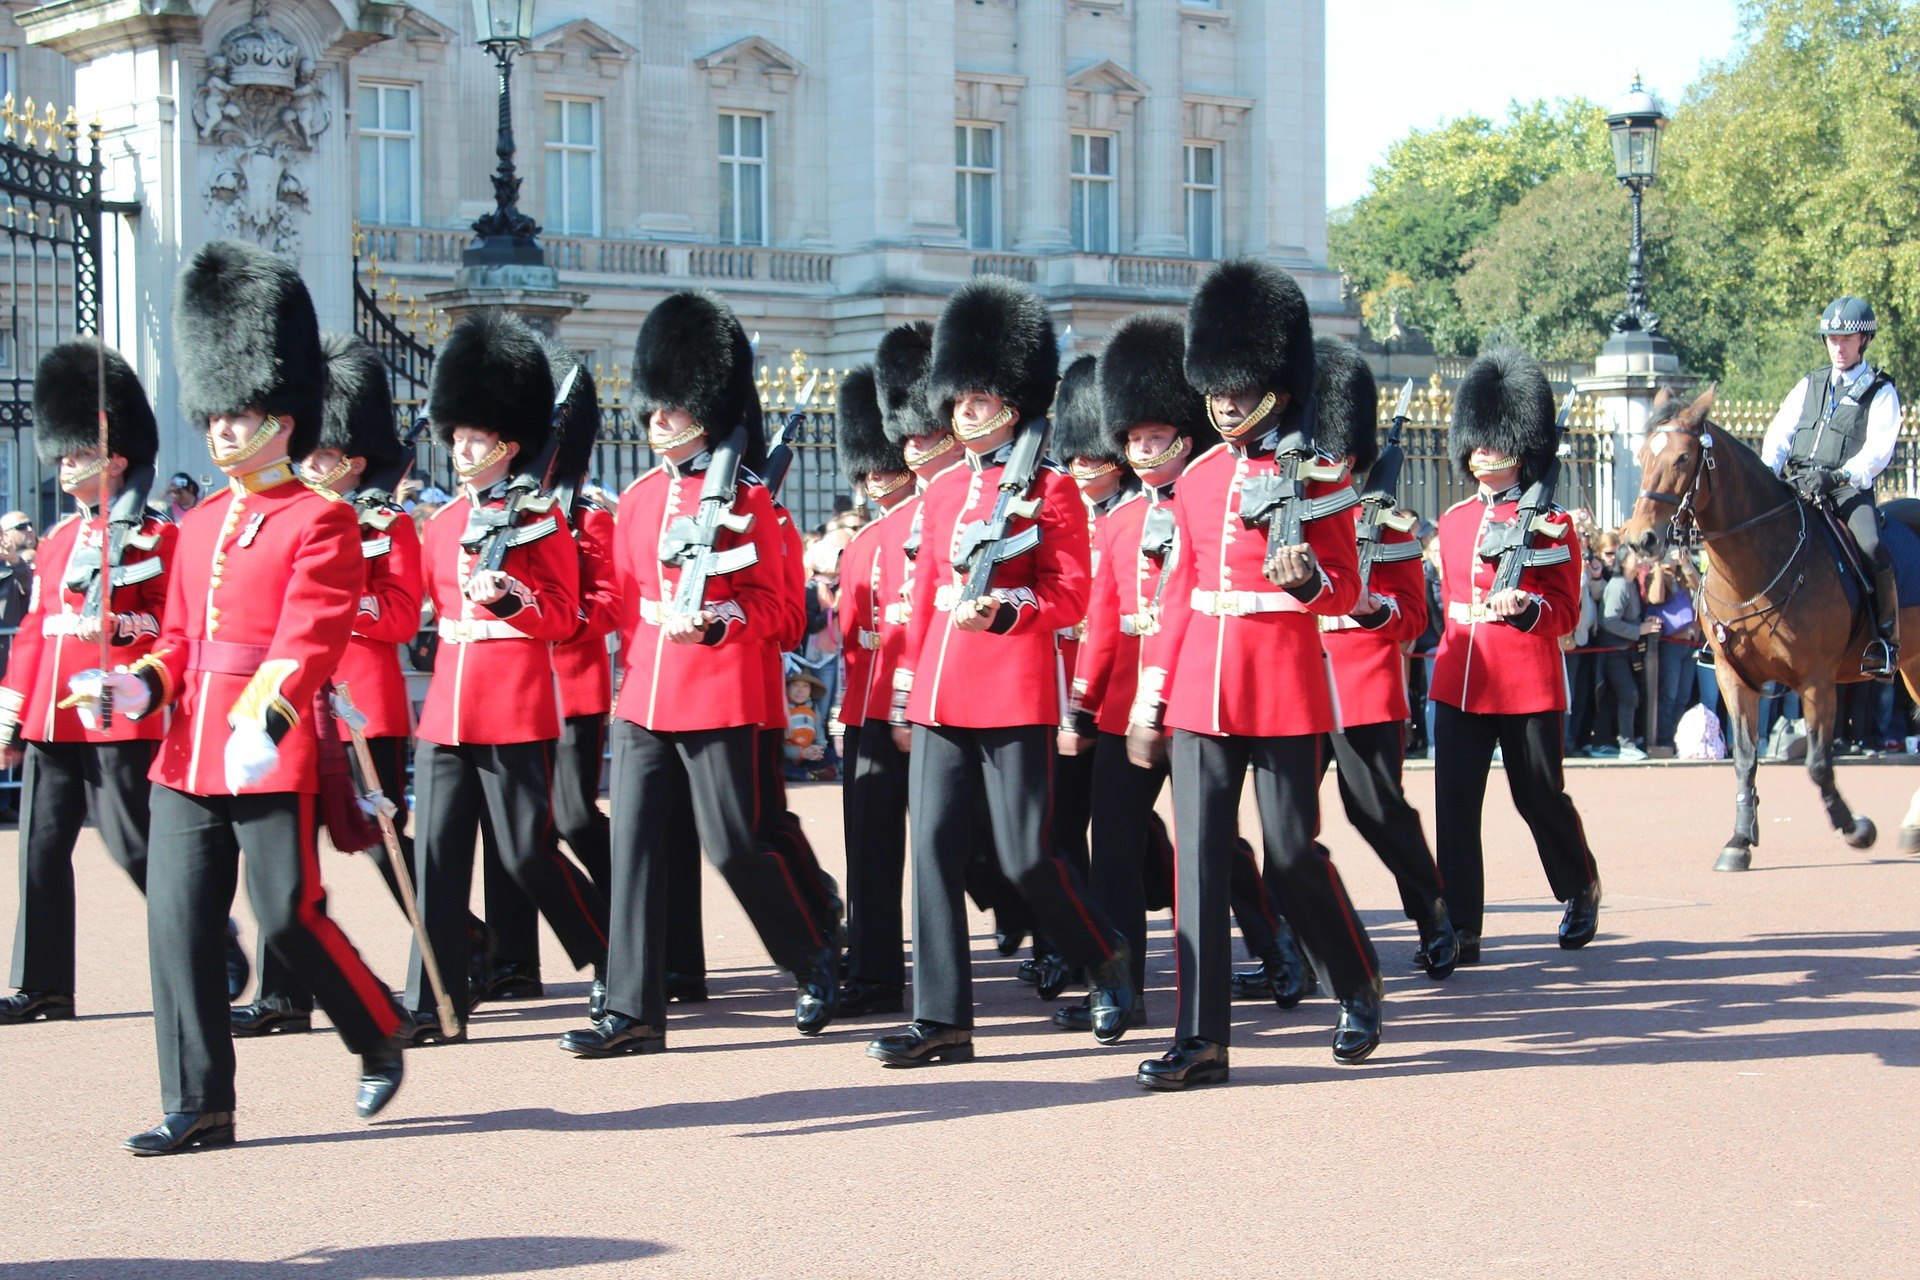 Changing of the Guard at Buckingham Palace, London